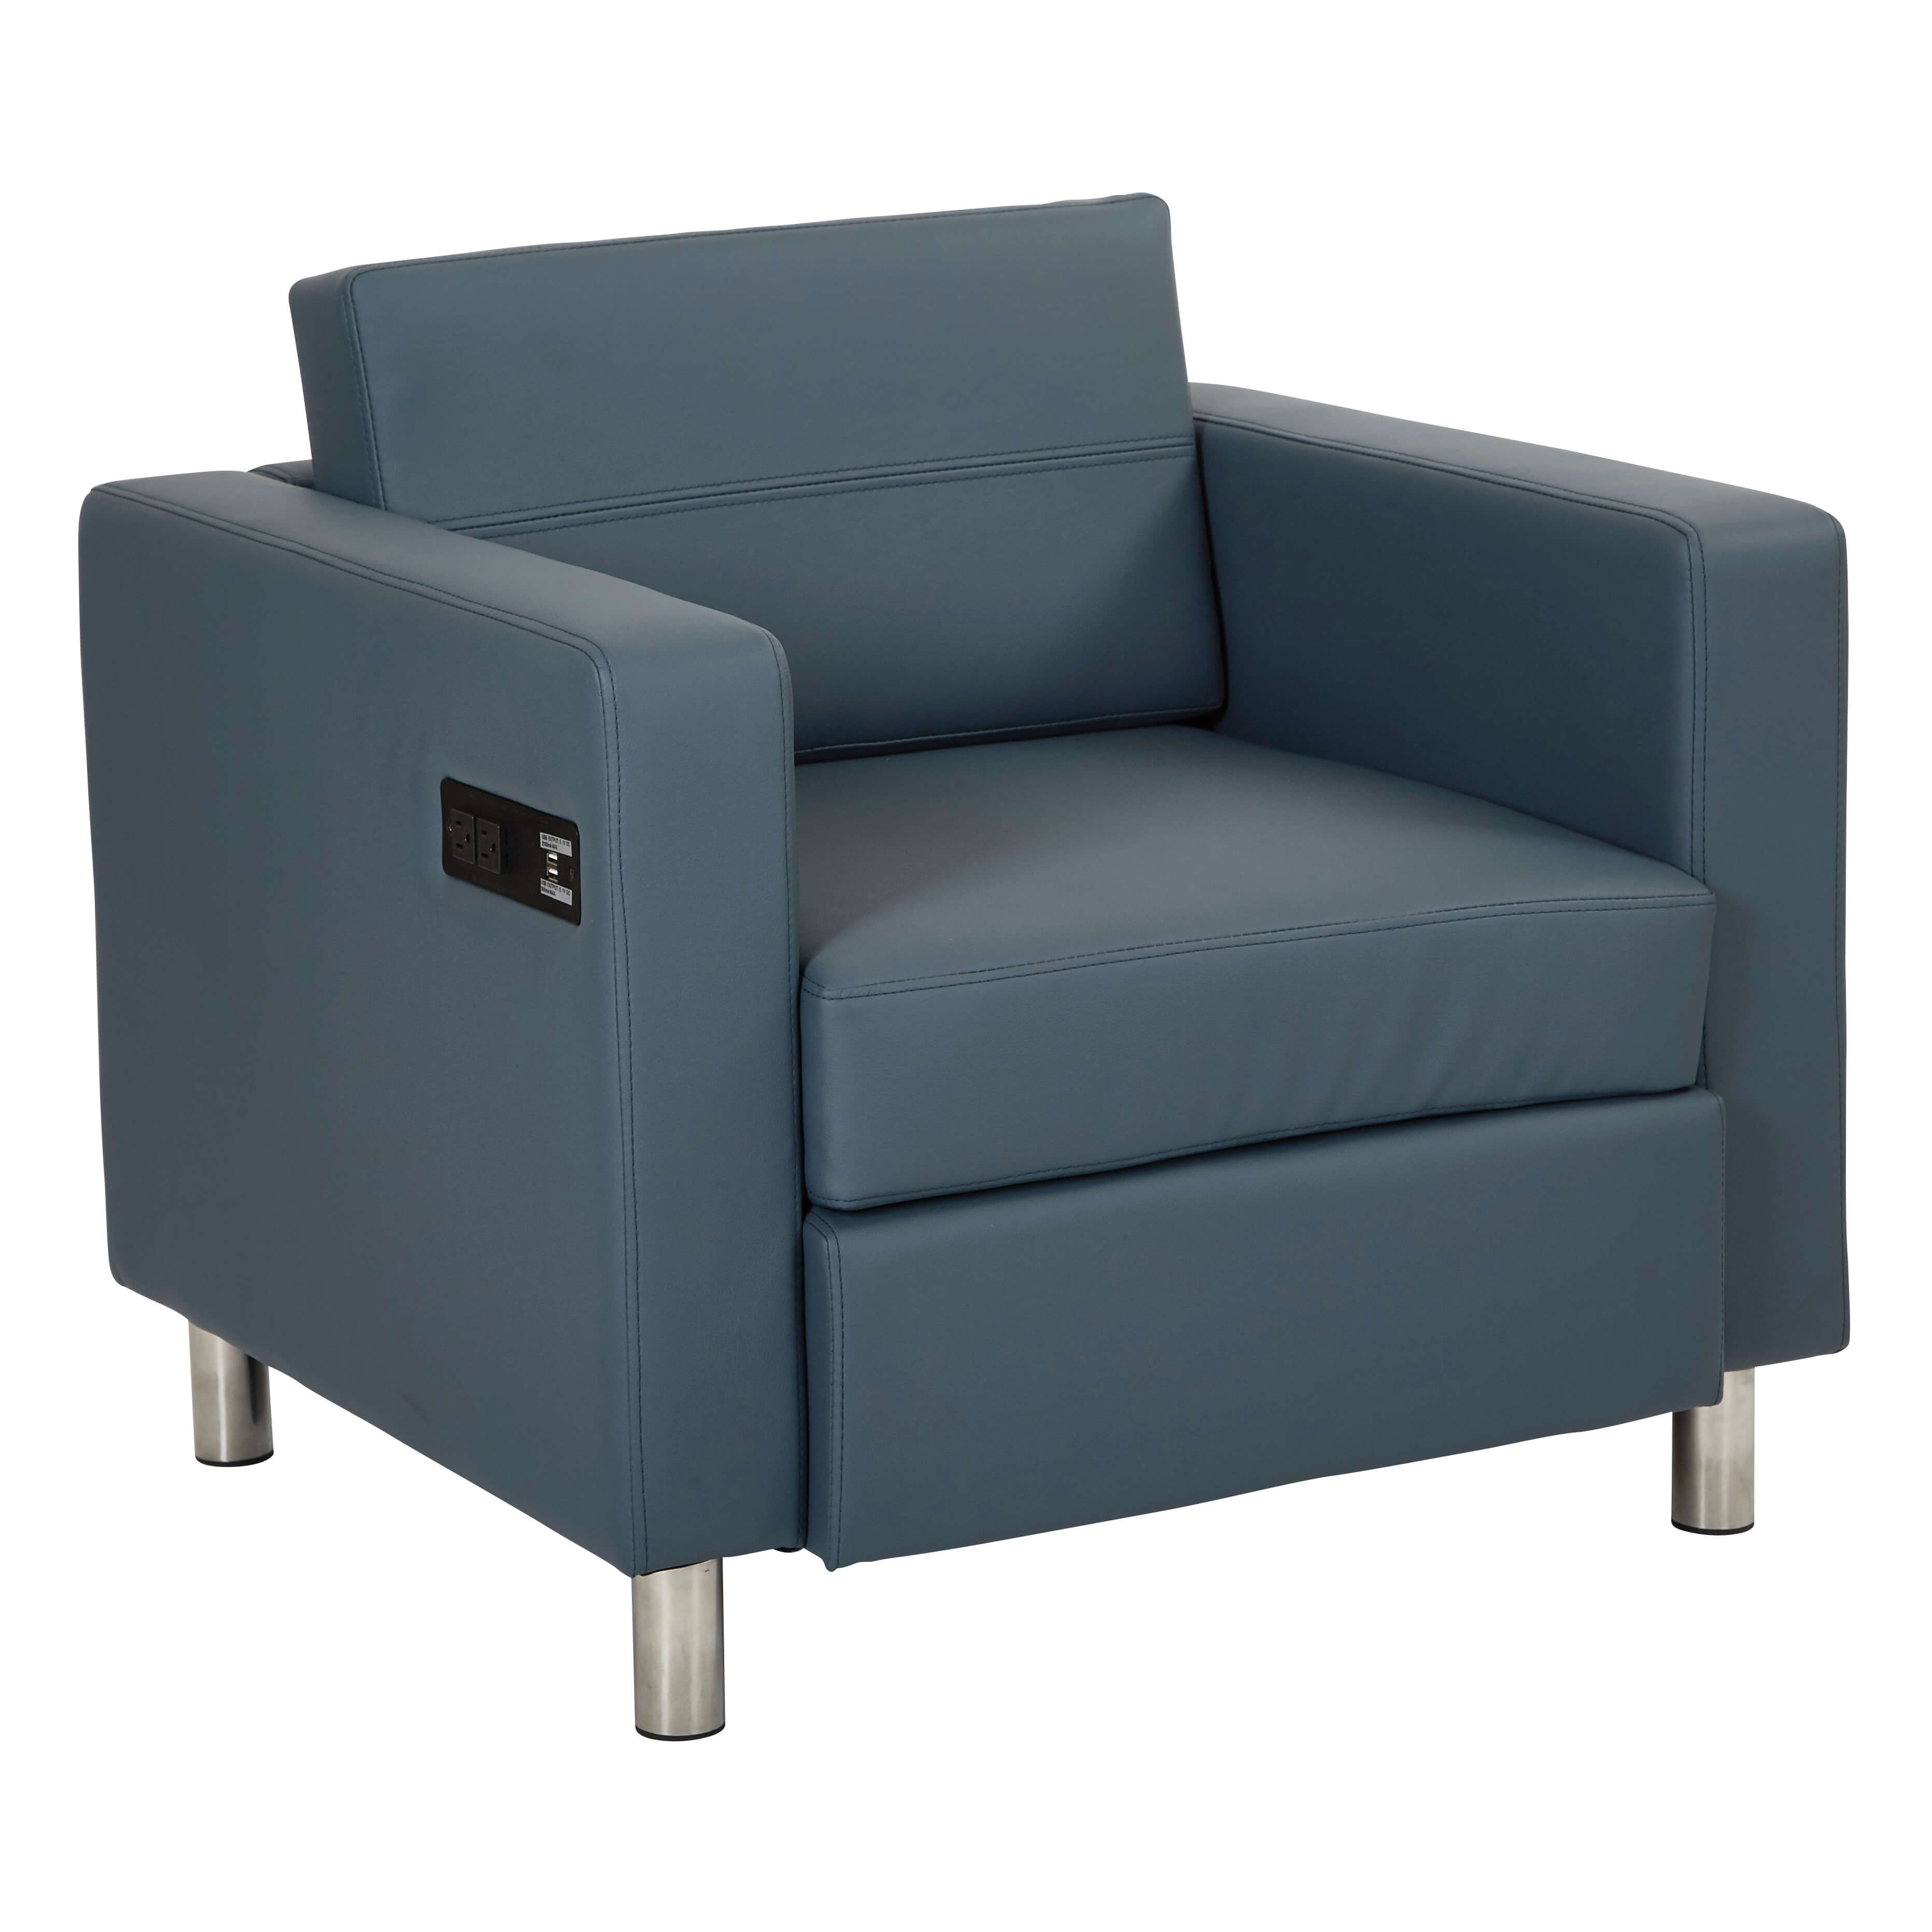 Magnificent Dayton Modern Waiting Room Chairs Bralicious Painted Fabric Chair Ideas Braliciousco